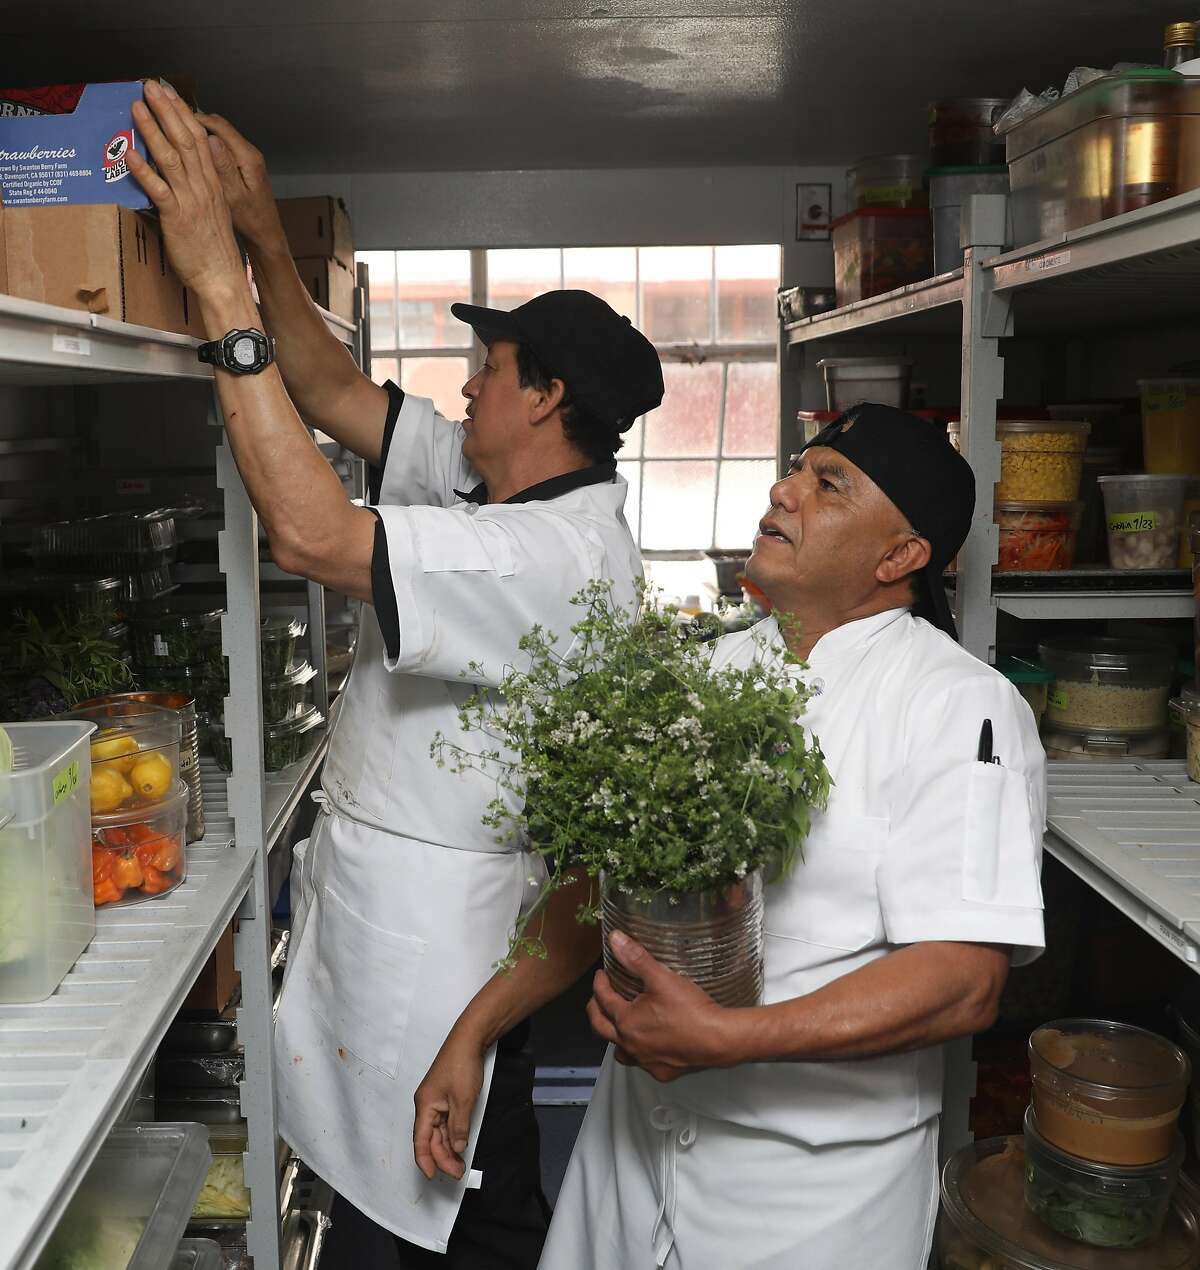 Prep cook Edgar Tolico (right) who has worked for 26 years at Greens walks into the refrigerator with herbs on Thursday, Sept. 26, 2019, in San Francisco, Calif. Greens, a longstanding vegetarian restaurant is commemorating its 40-year anniversary this year.